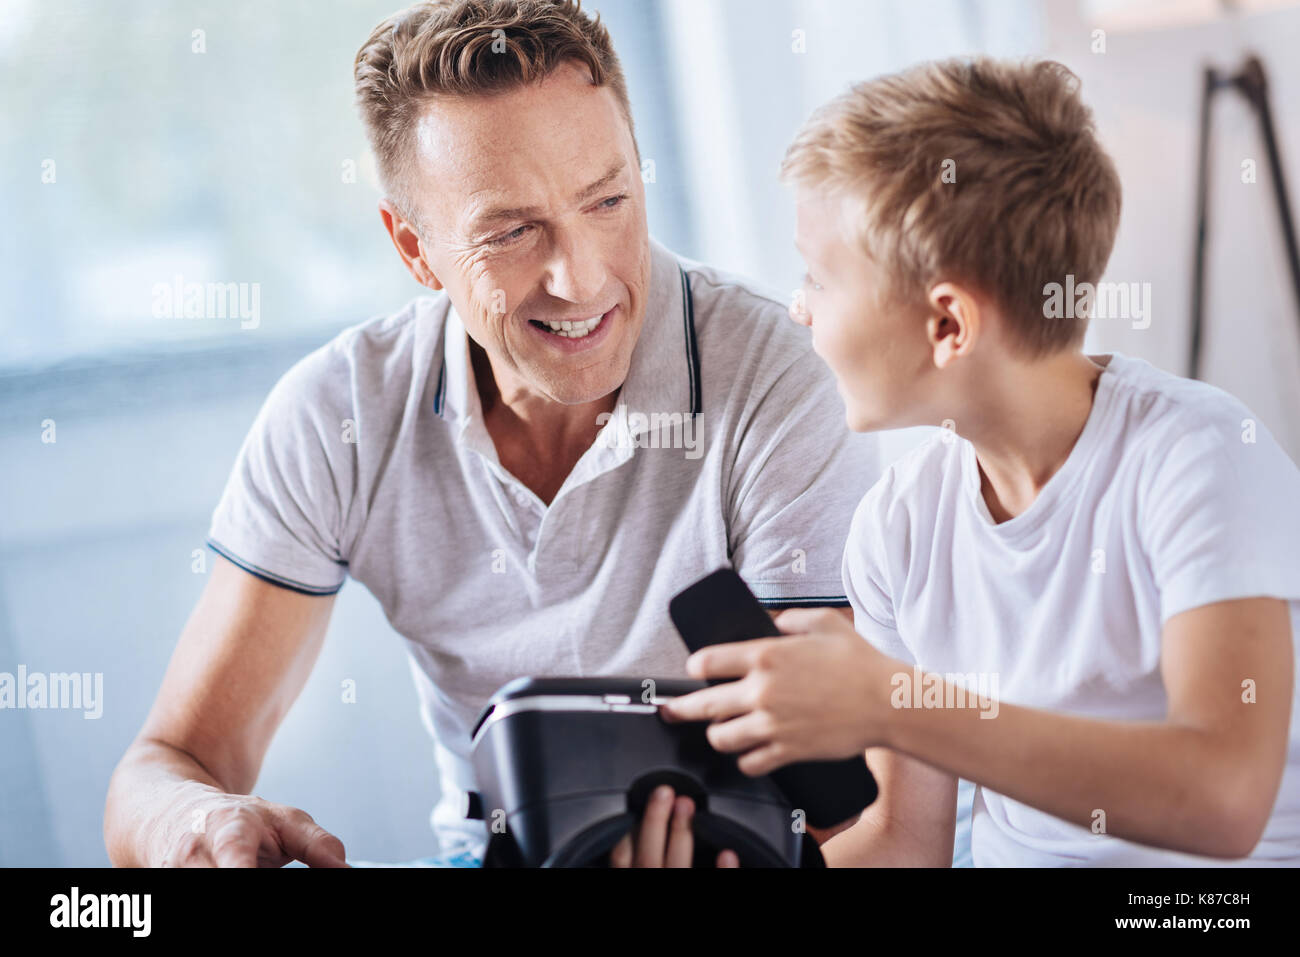 Pre-teen boy asking father how to open VR headset - Stock Image